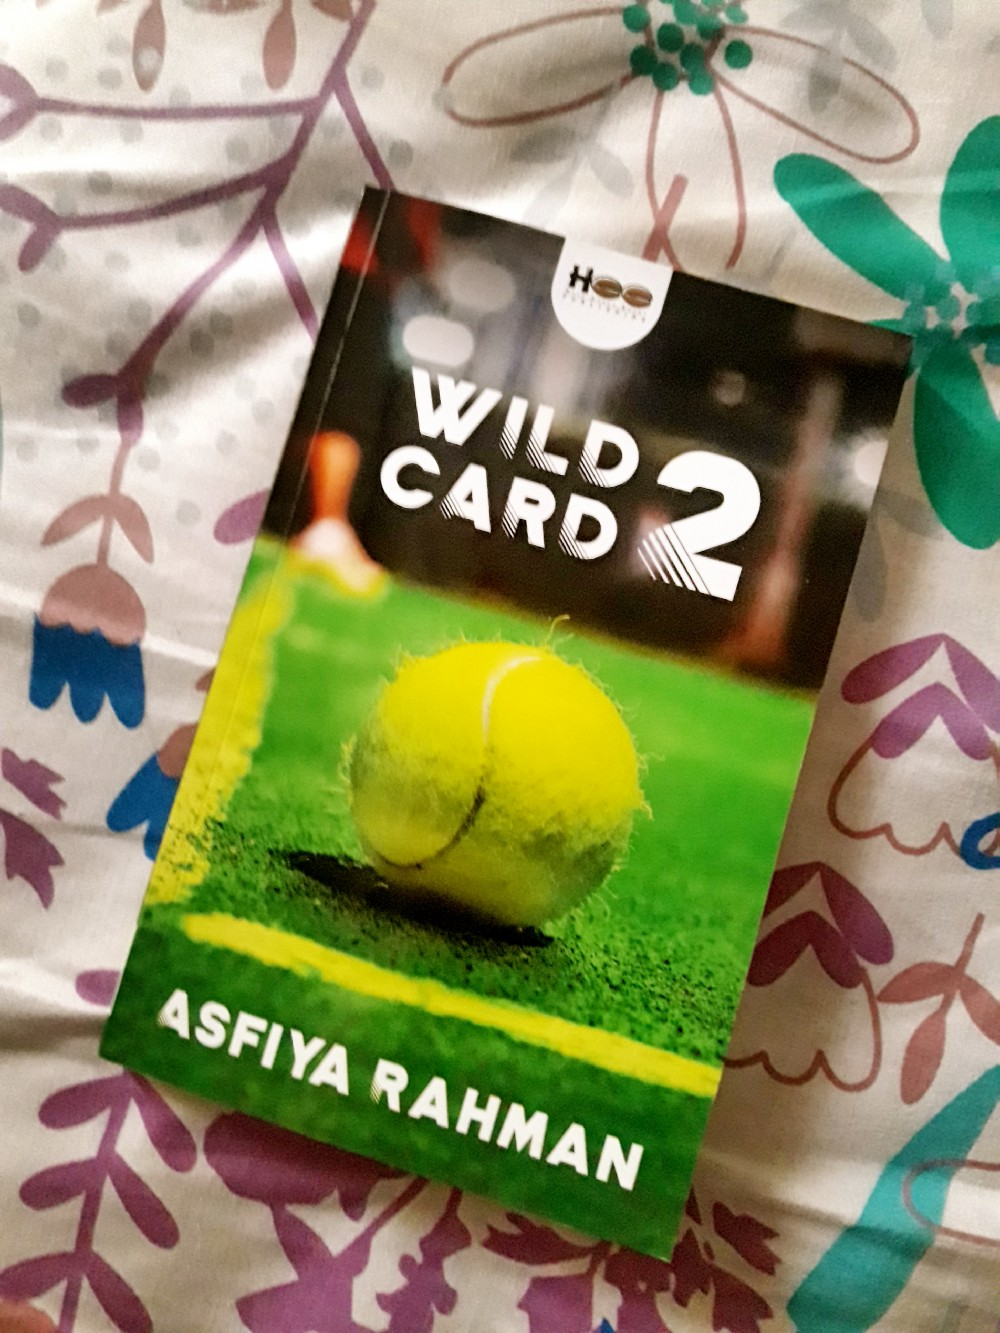 Book Review — Wild Card2